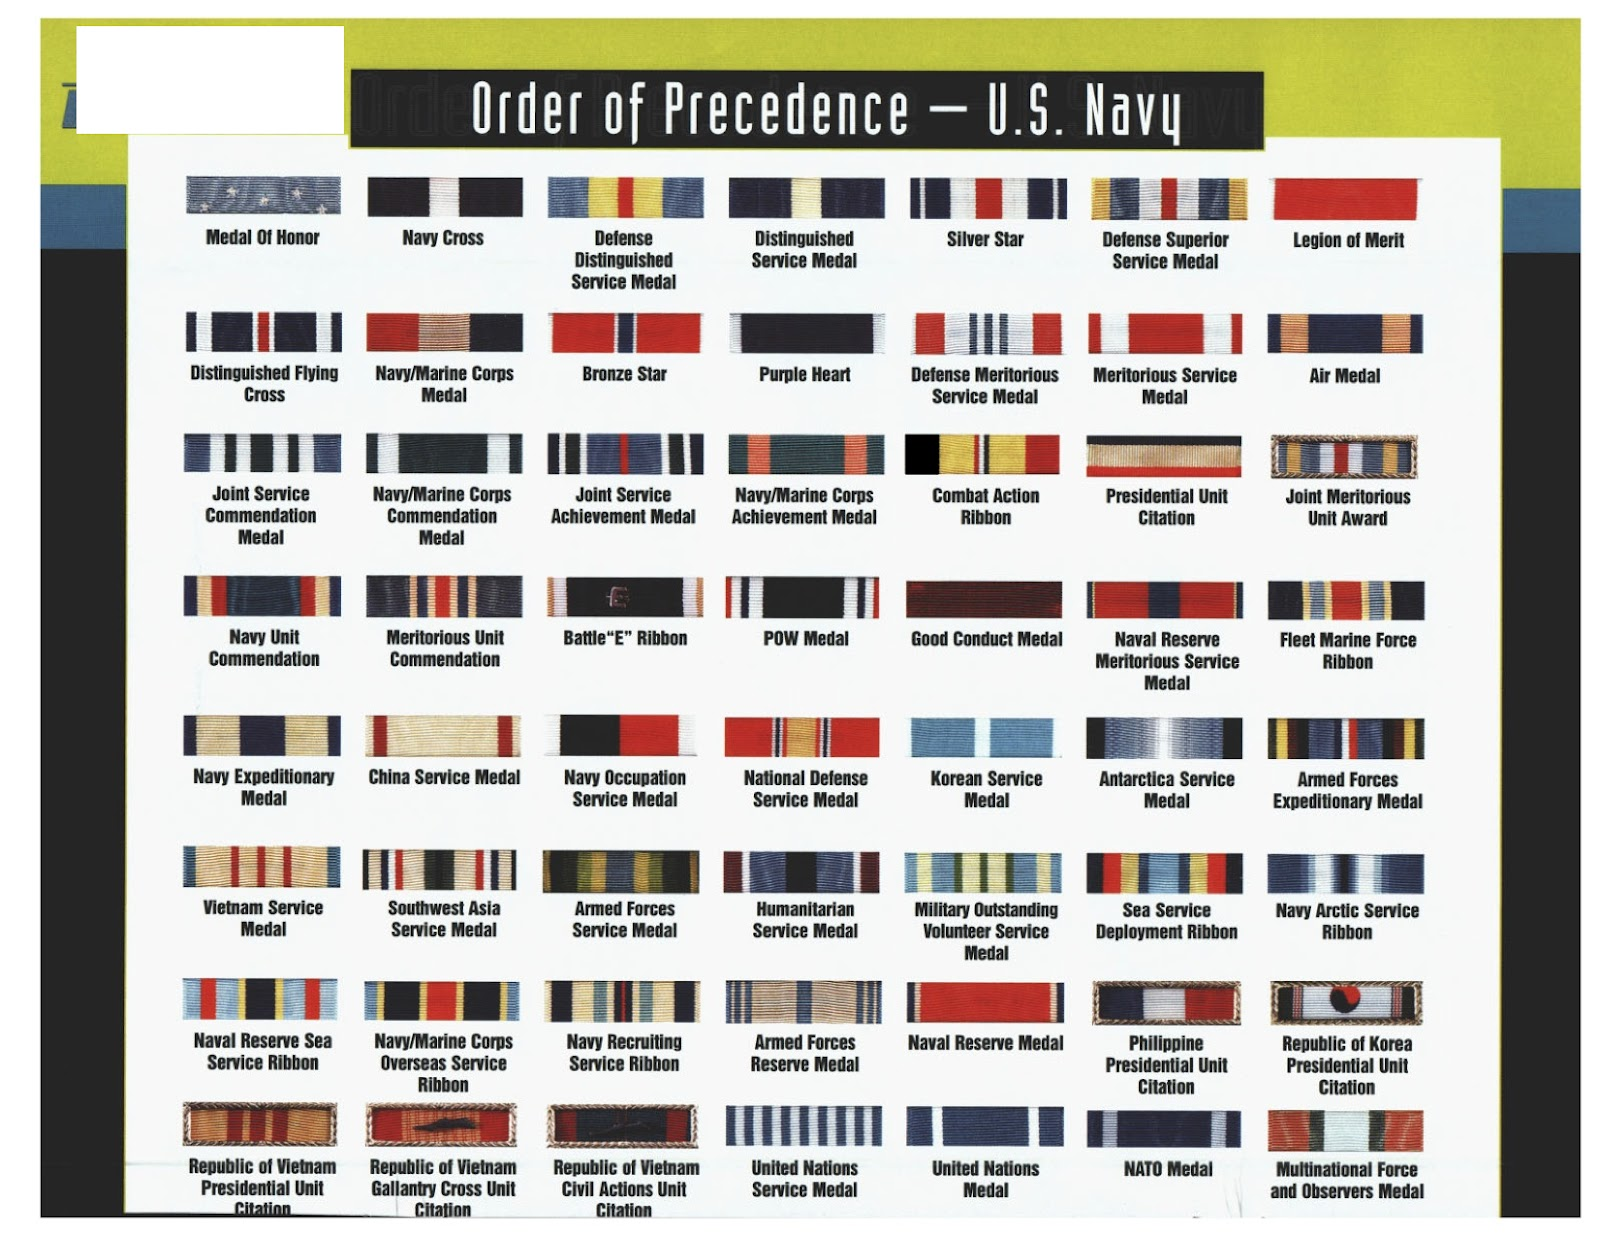 Opinions On Order Of Precedence